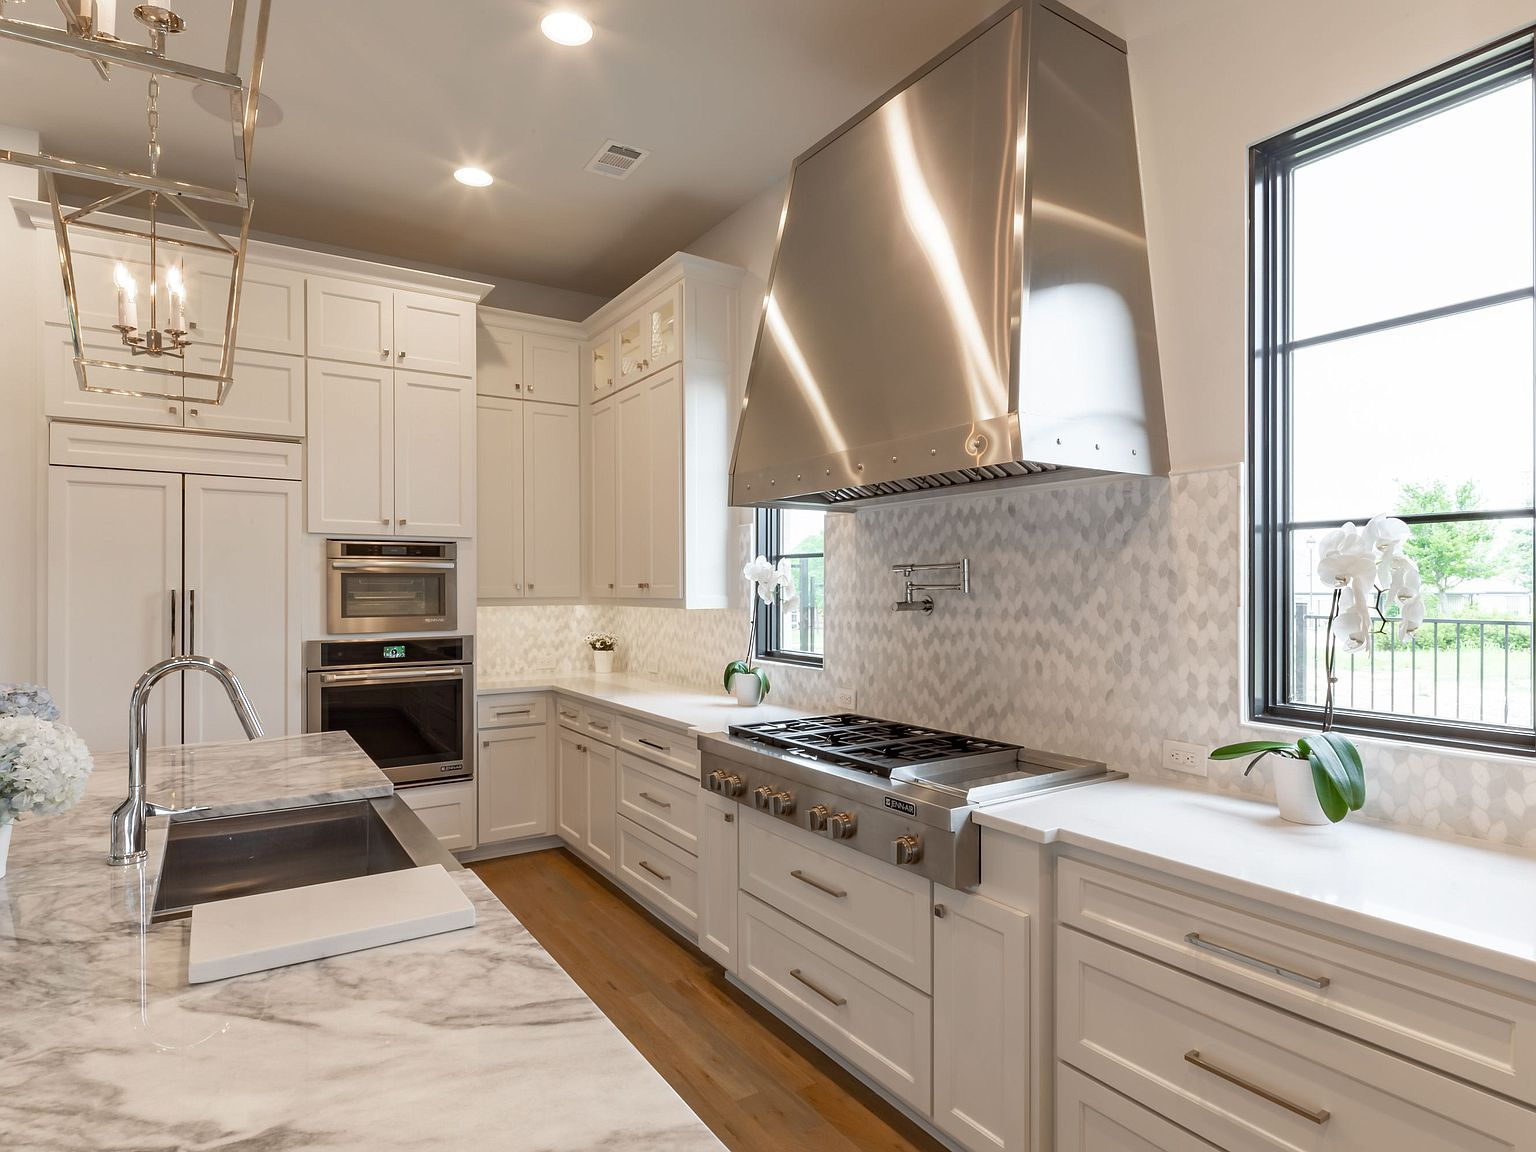 Carter Home Remodeling Offers Complete Solutions For Kitchen Remodeling In San Leandro And The Surr Kitchen Remodel Home Remodeling Contractors Home Remodeling